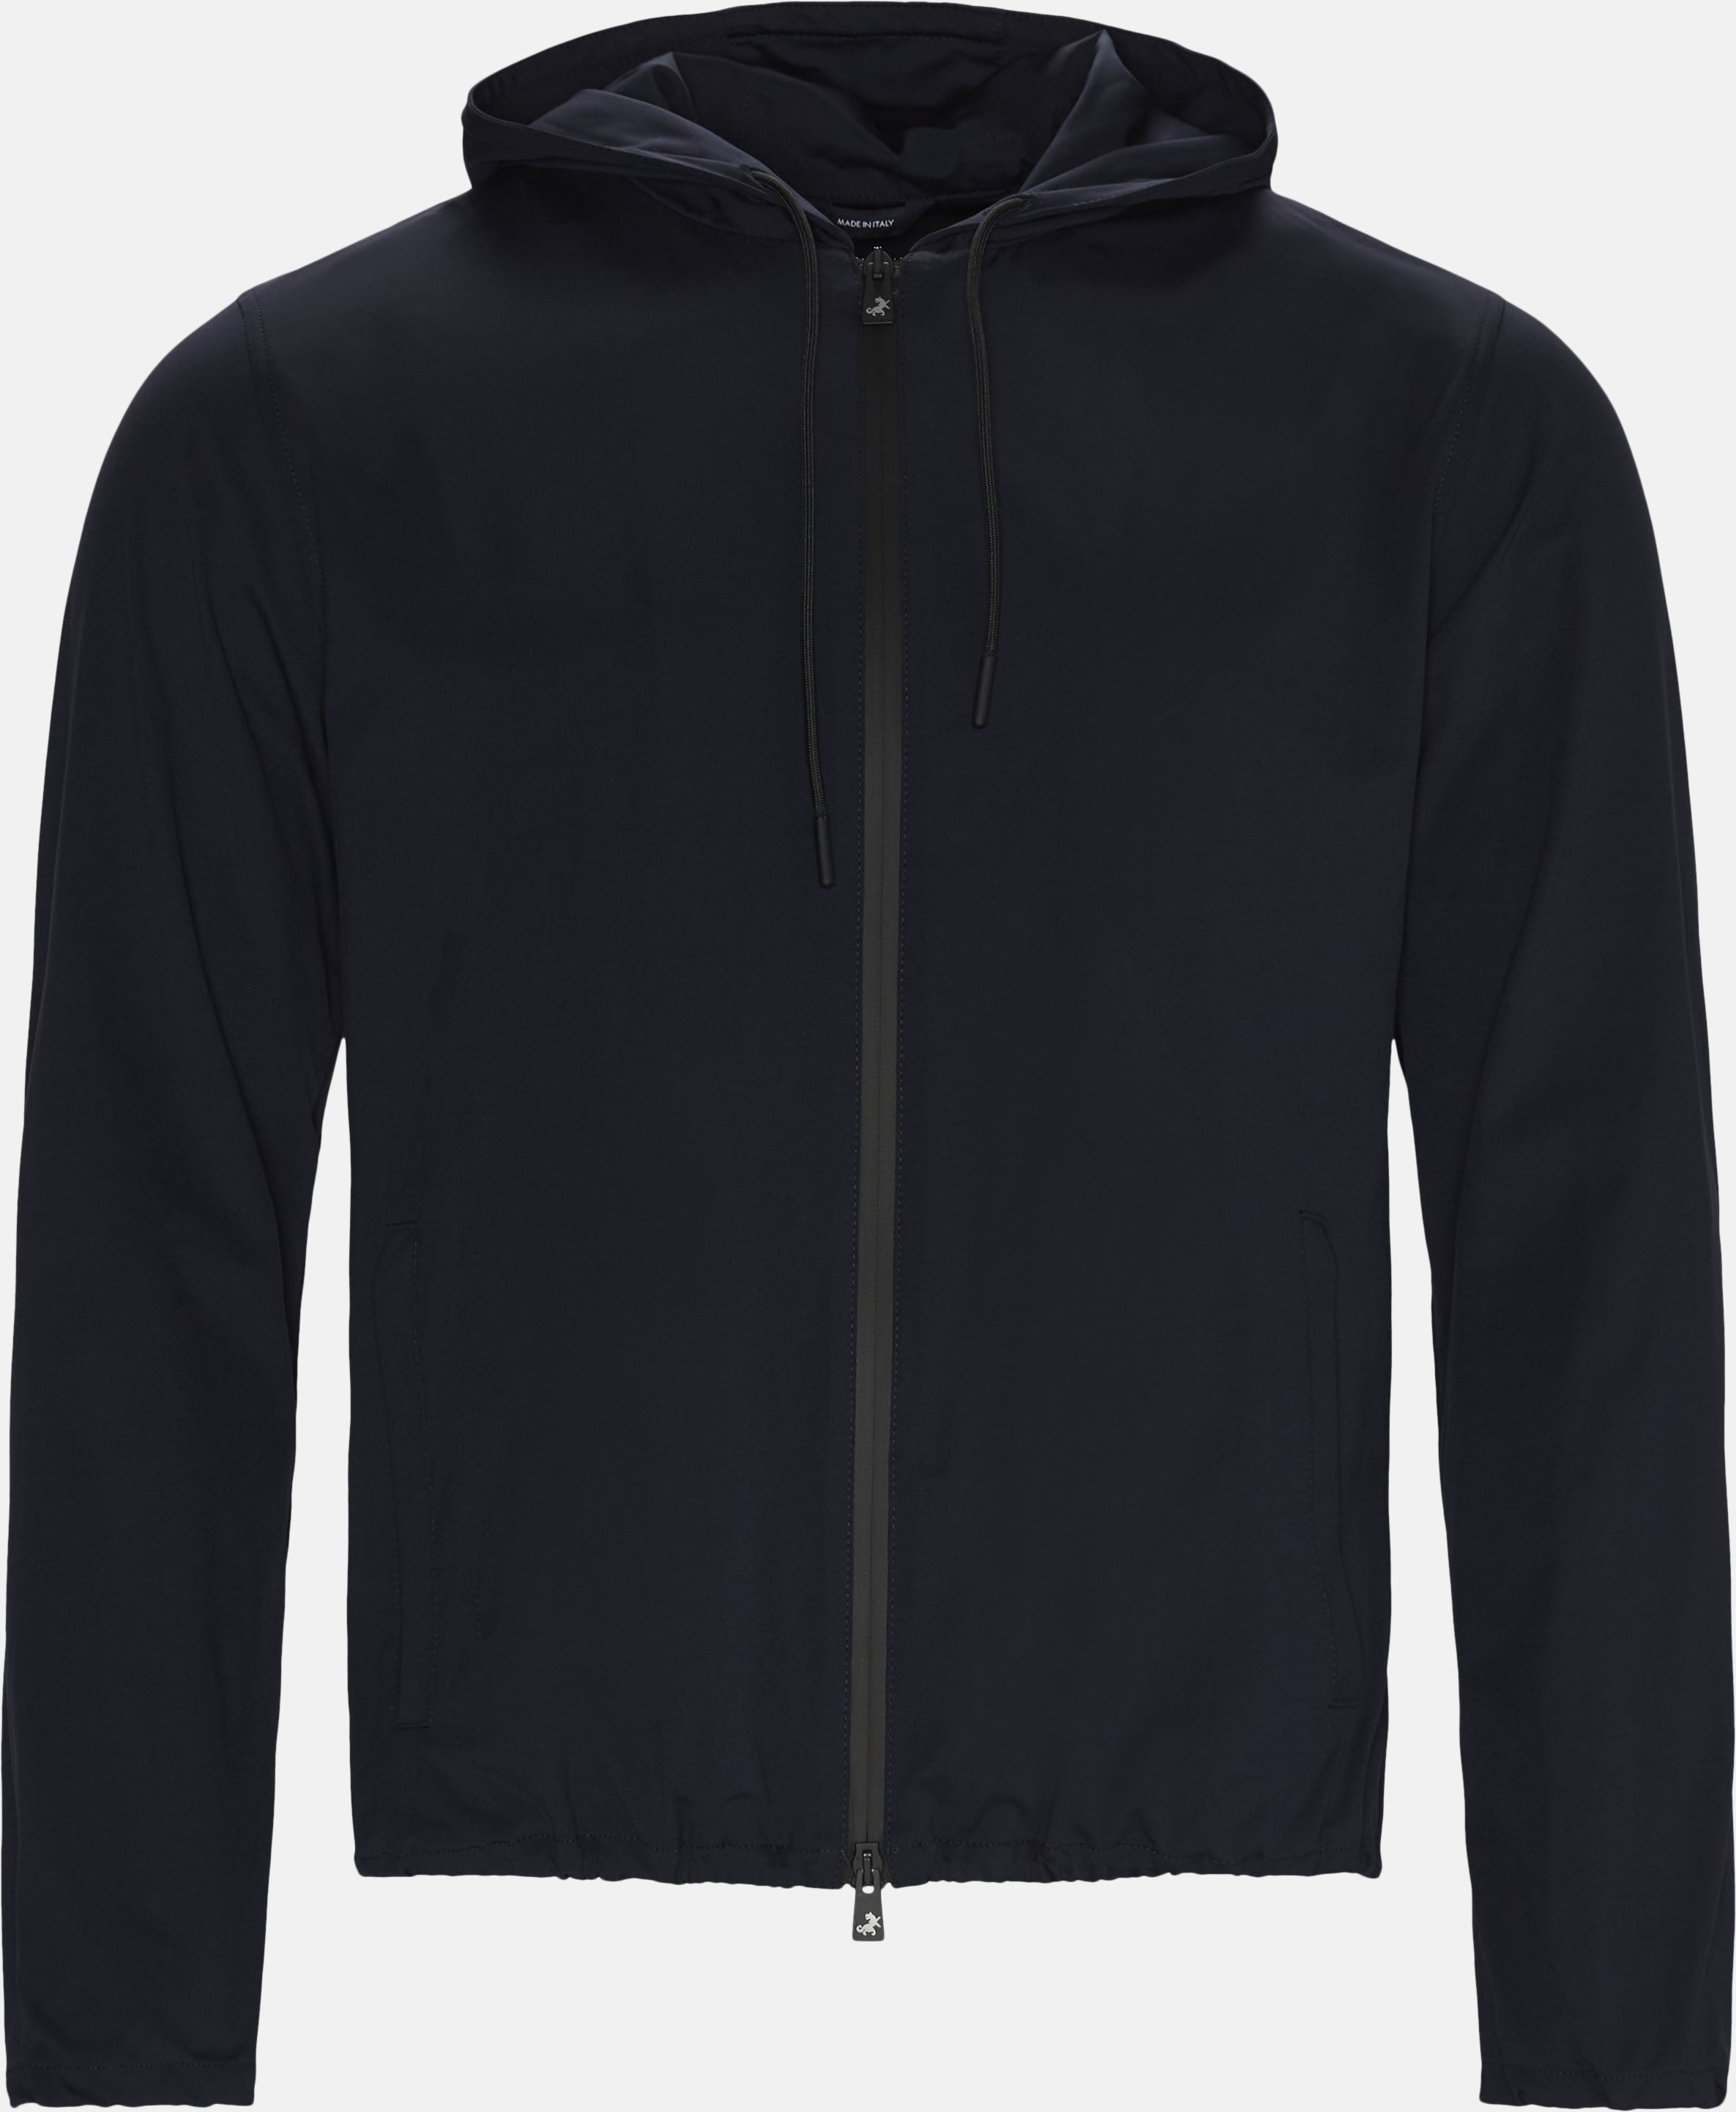 Zip sweatshirts - Regular fit - Blå